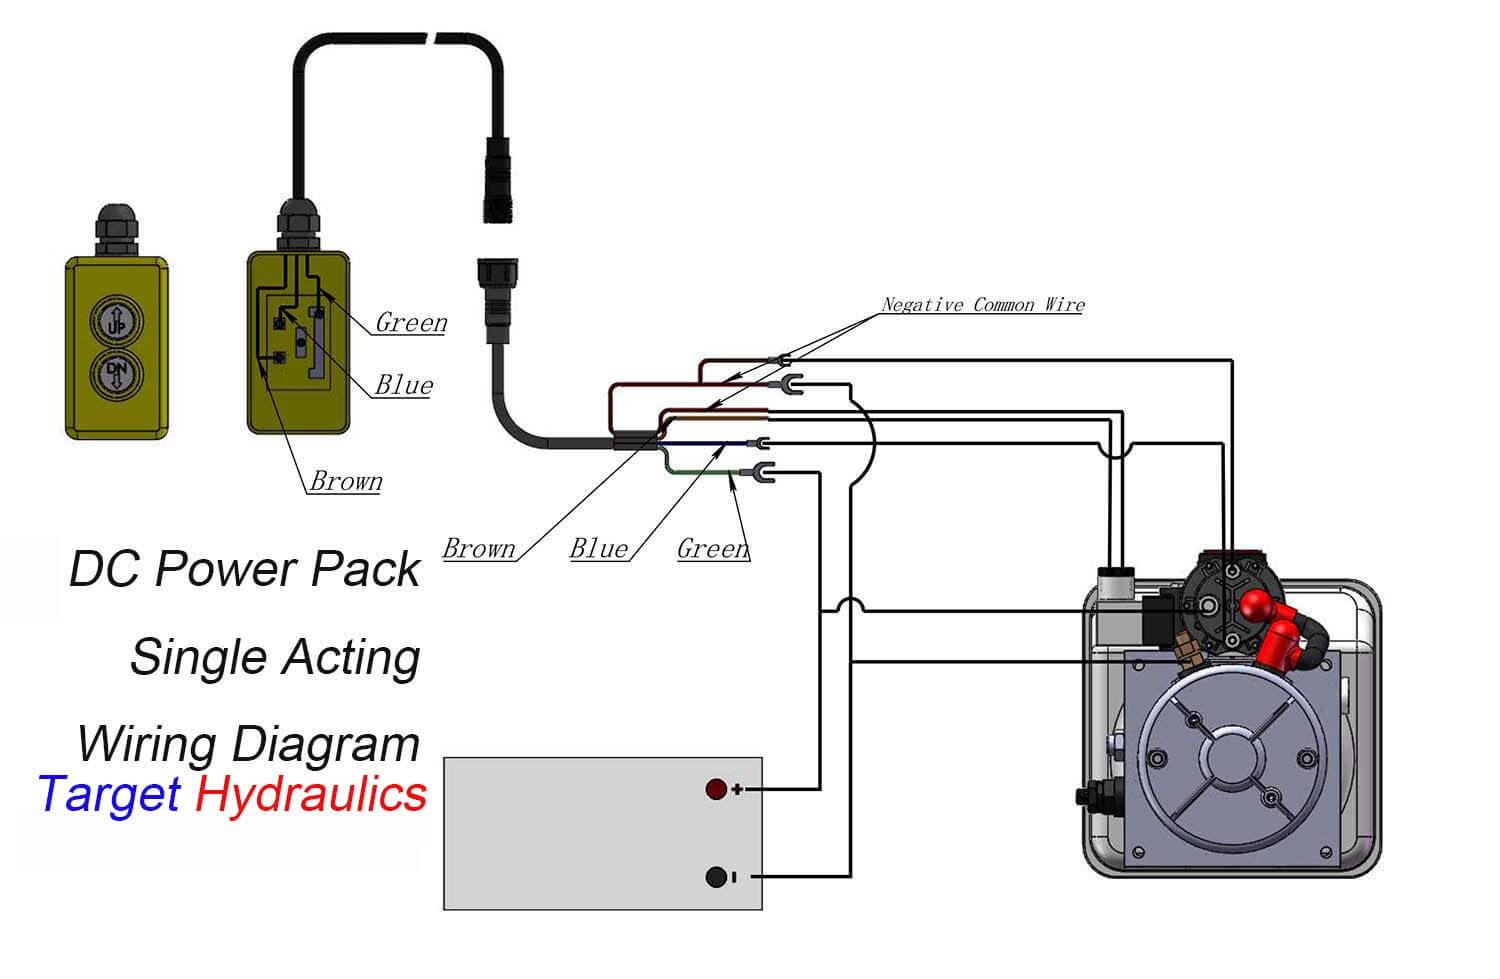 Reversing Valve Wiring Diagram Opinions About Liberty Pump How To Wire Hydraulic Power Pack Unit Design Condenser Hvac